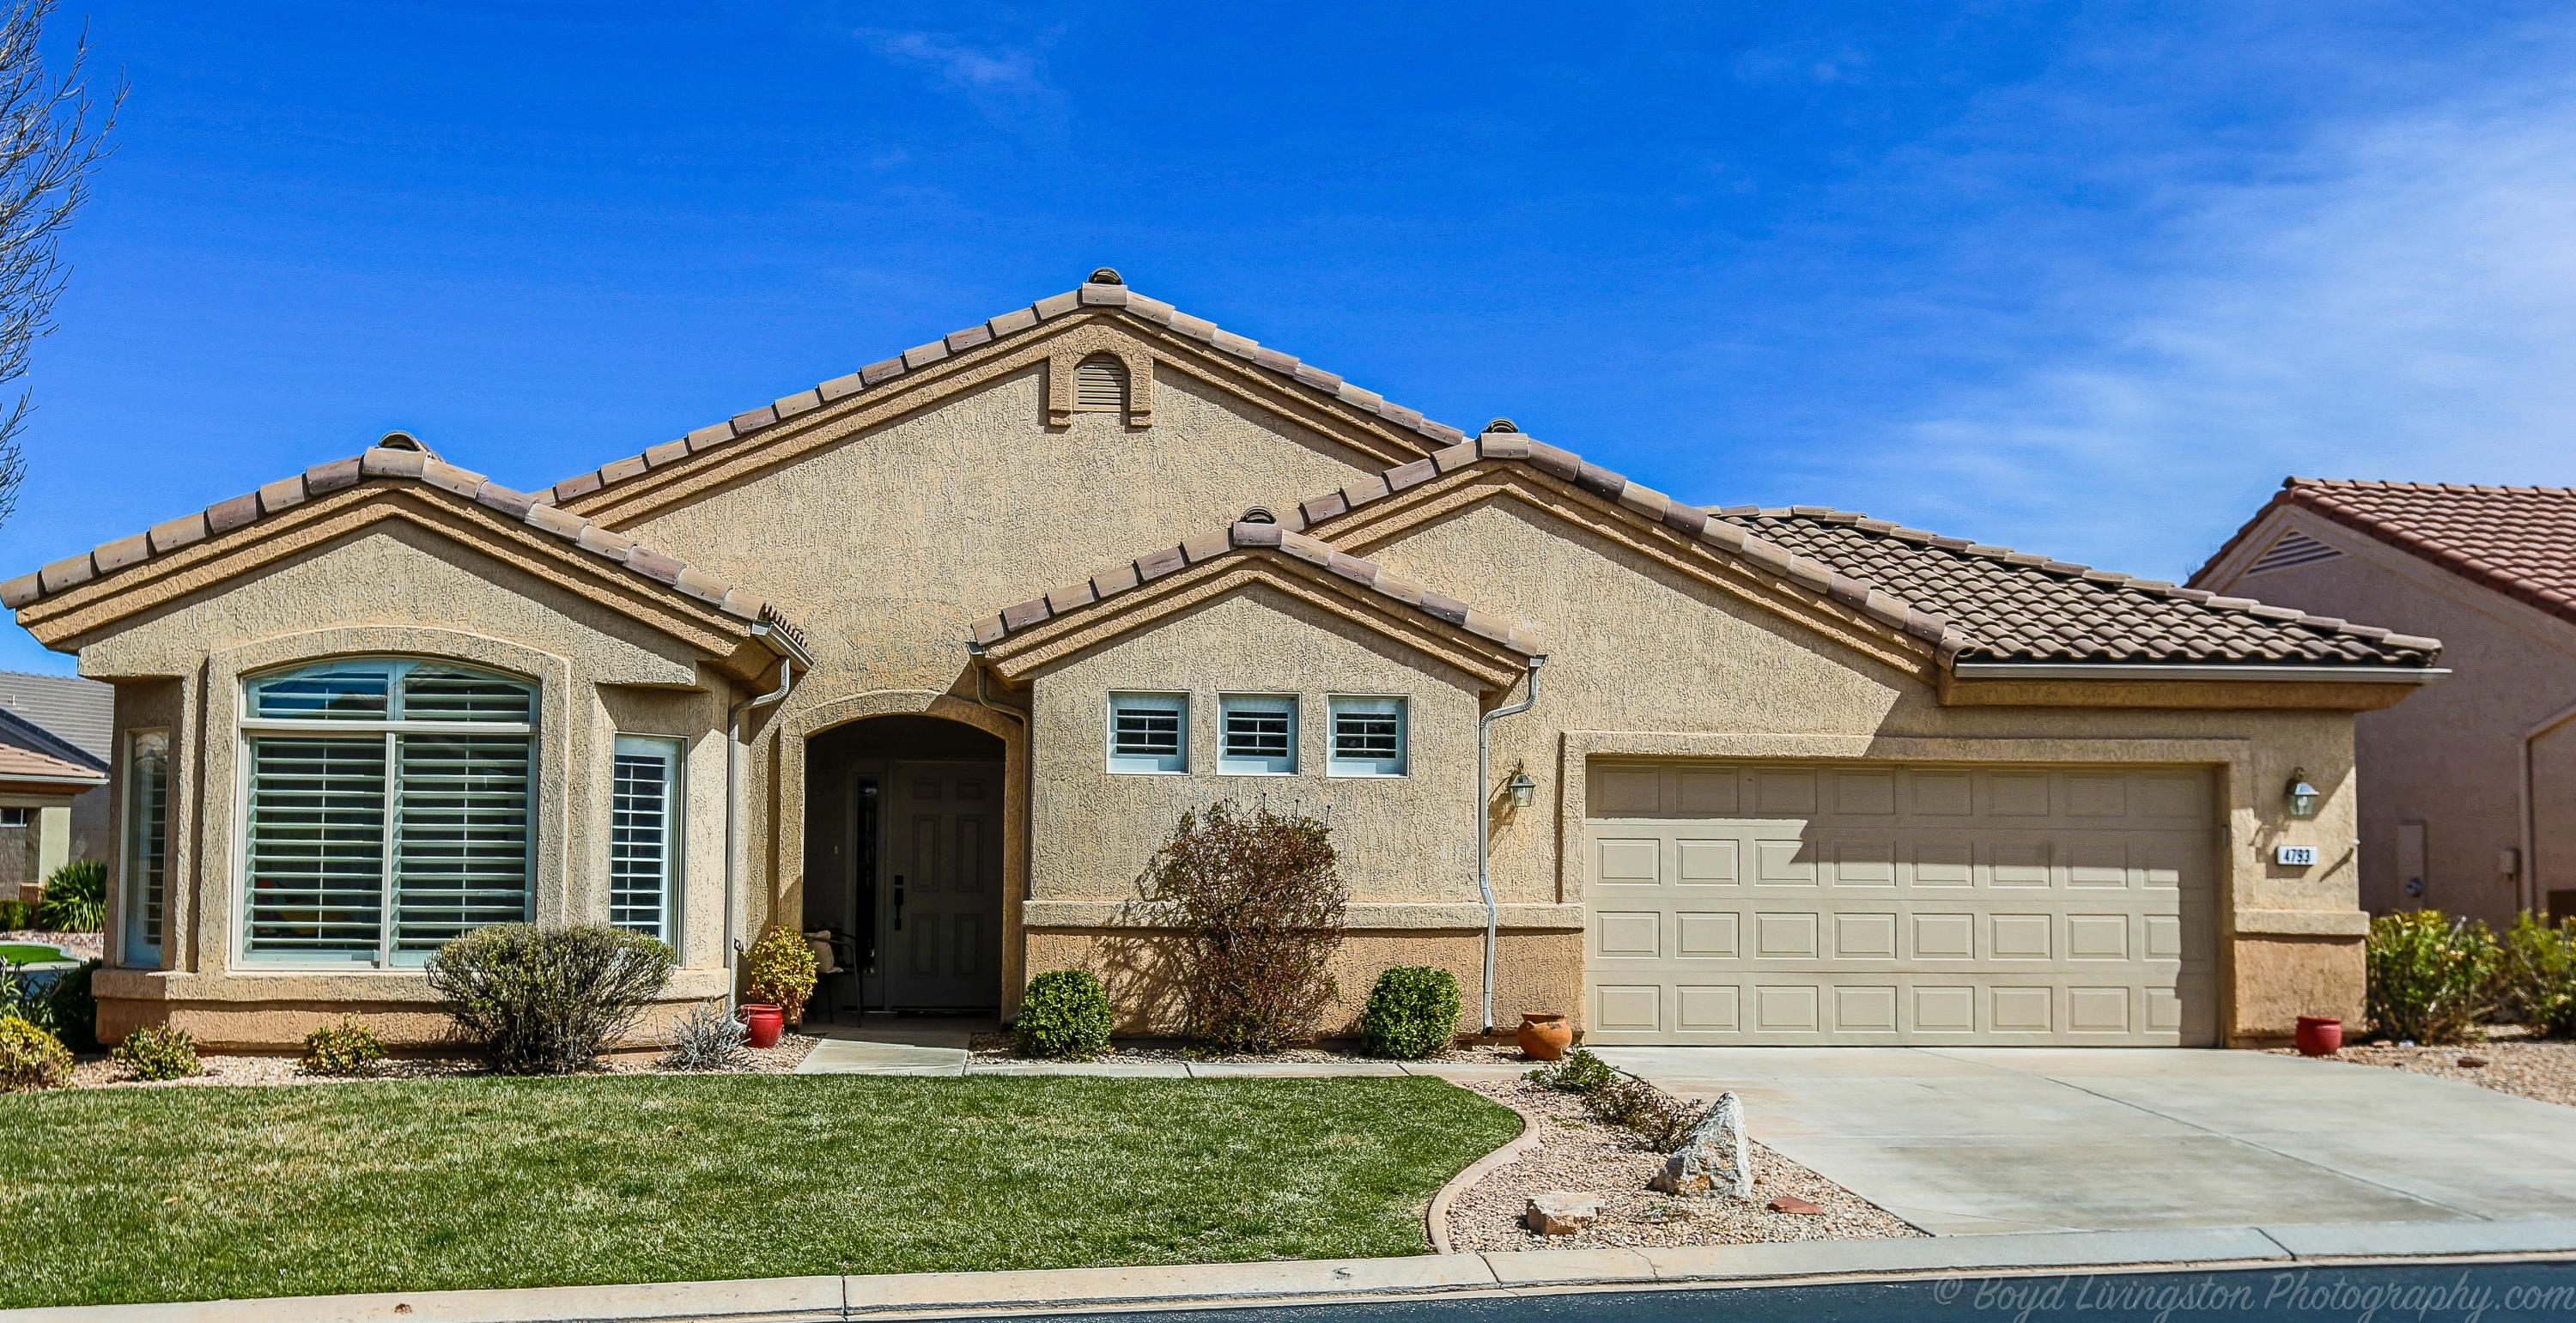 4793 S Tranquility Bay Dr, St George Ut 84790